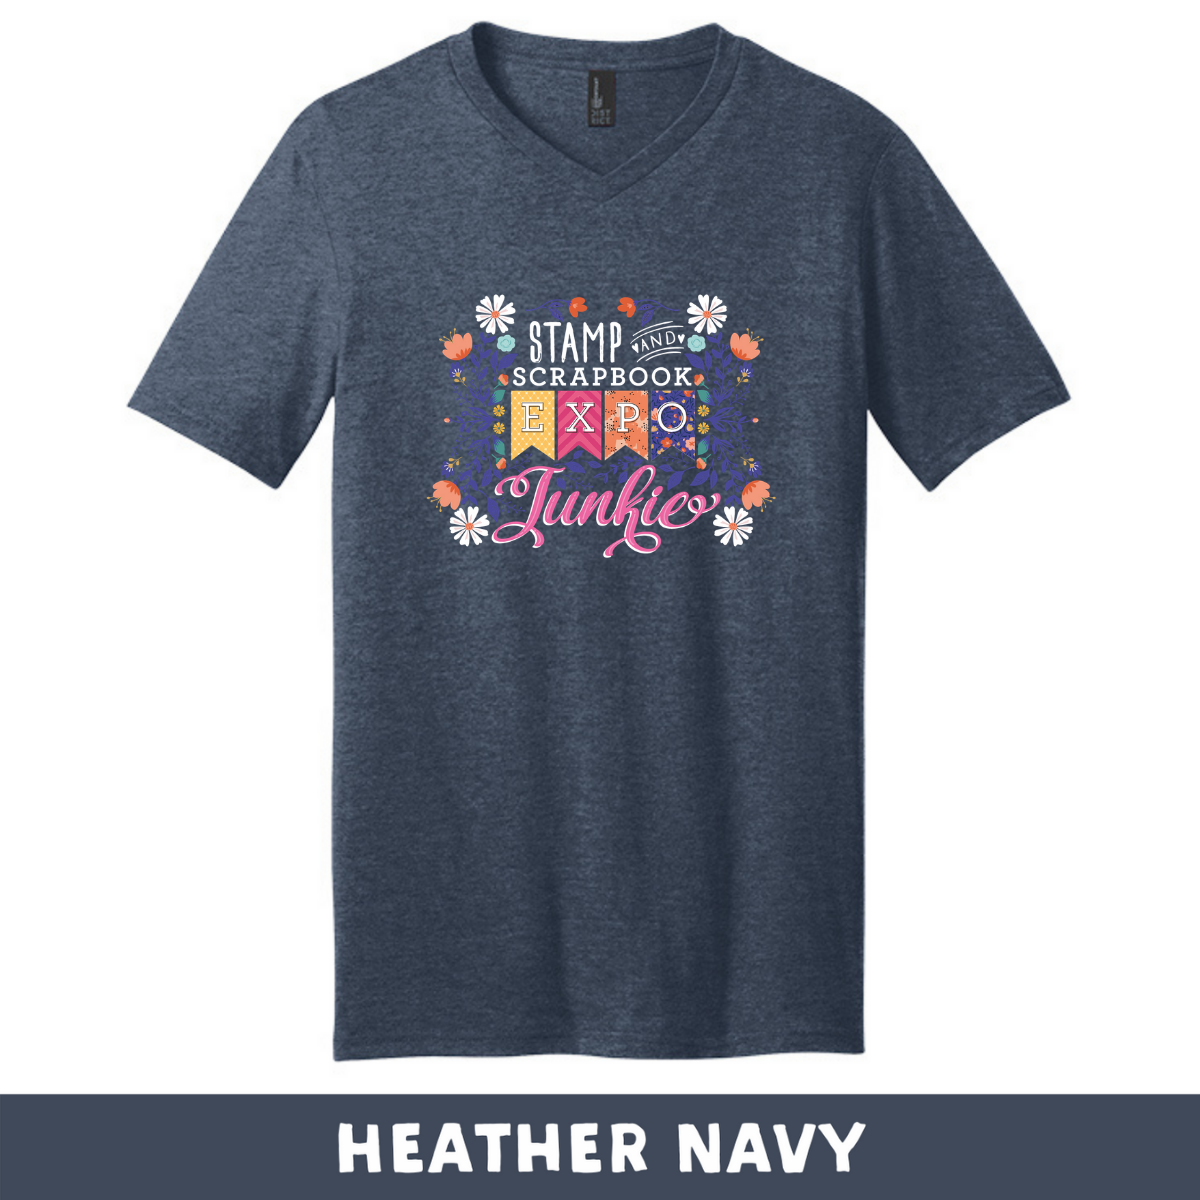 Heather Navy - Extra Soft Unisex V-Neck - SSBE Junkie With/Flower